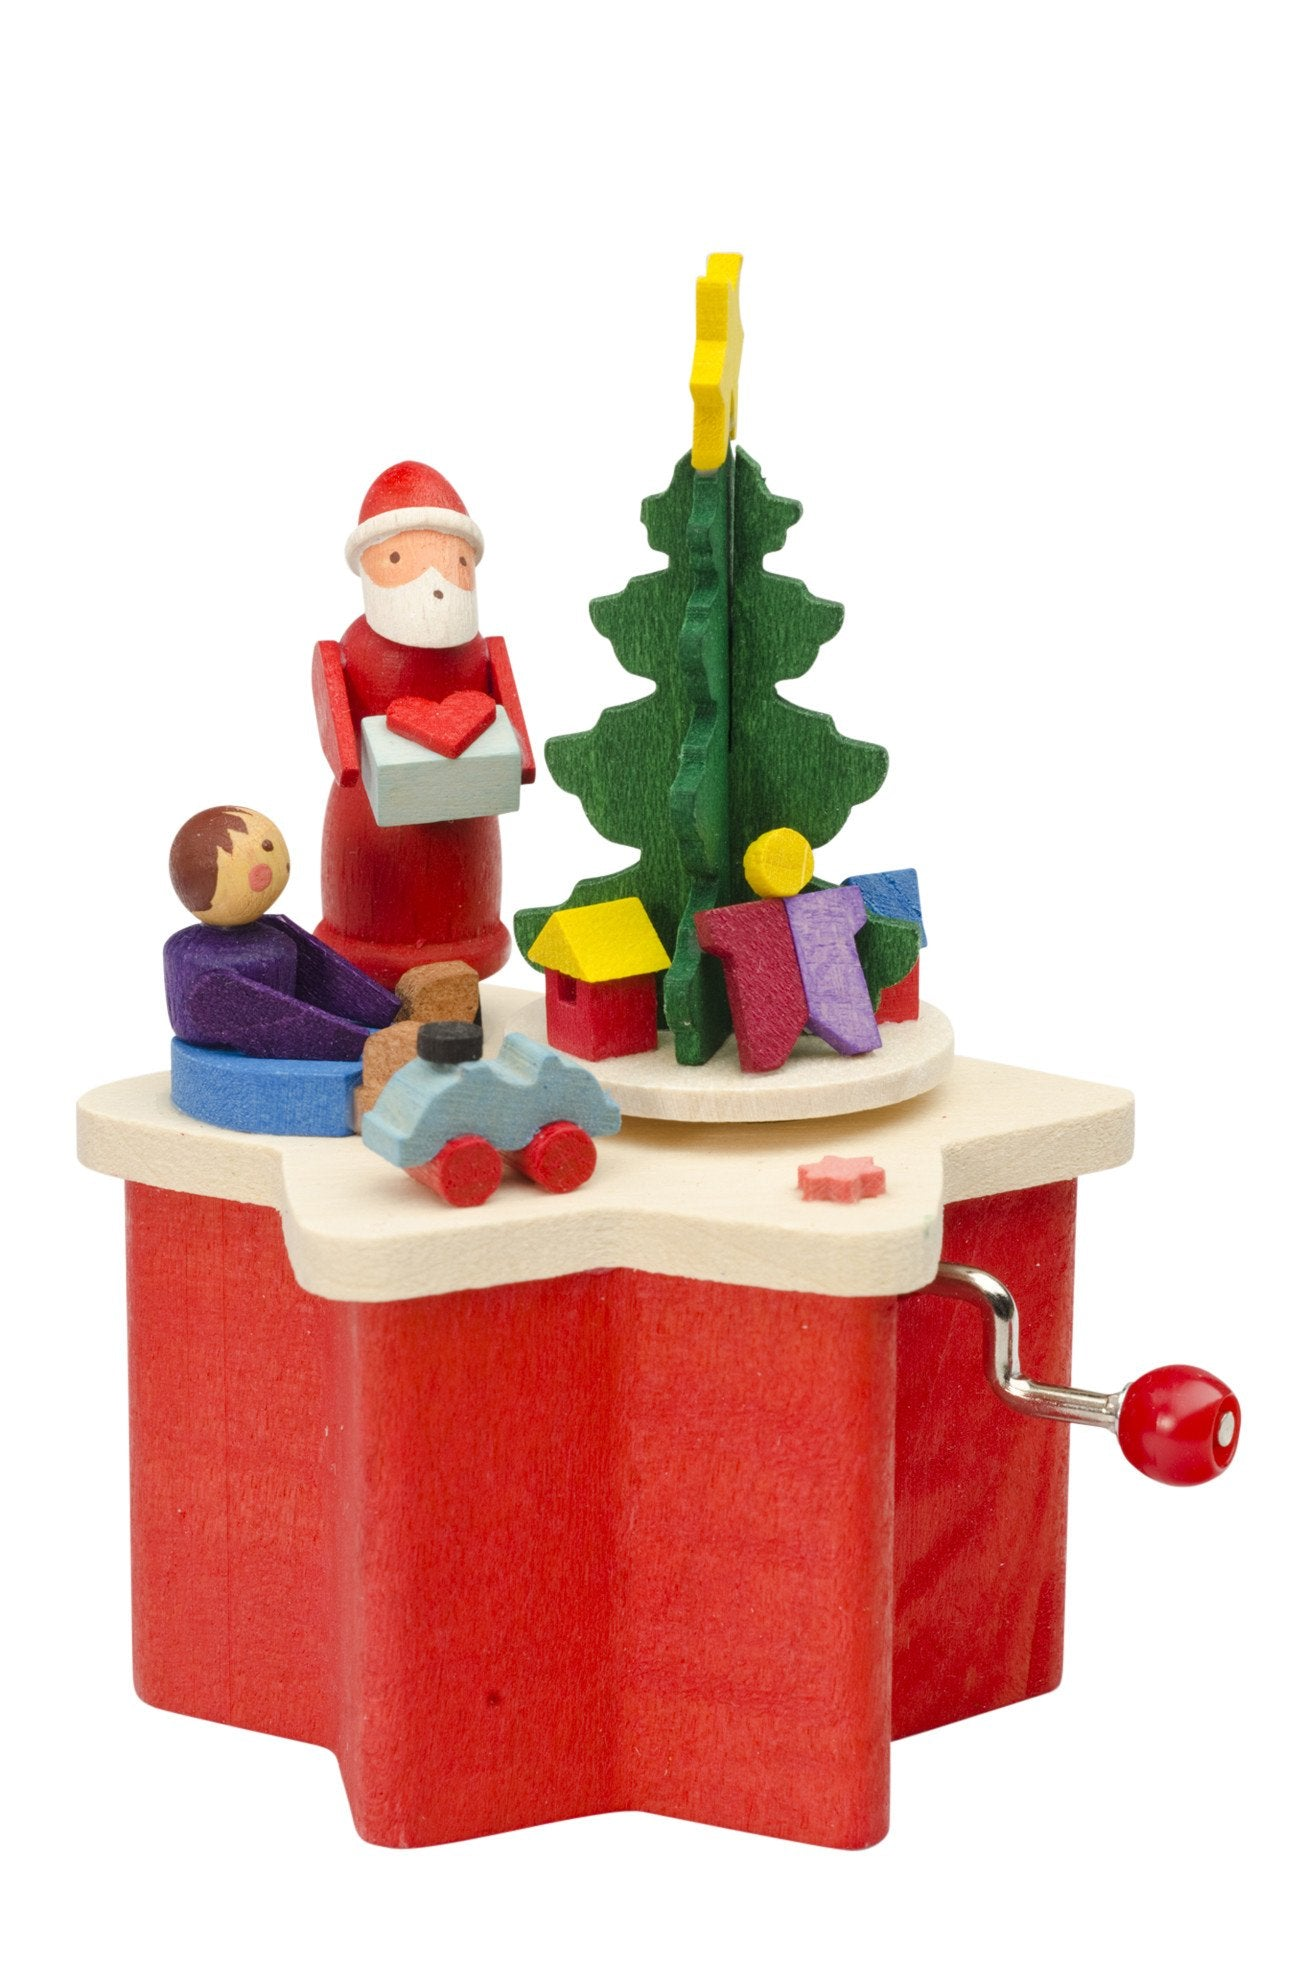 Music Box (Traditional Crank-Style) - Miniature Santa and Christmas tree